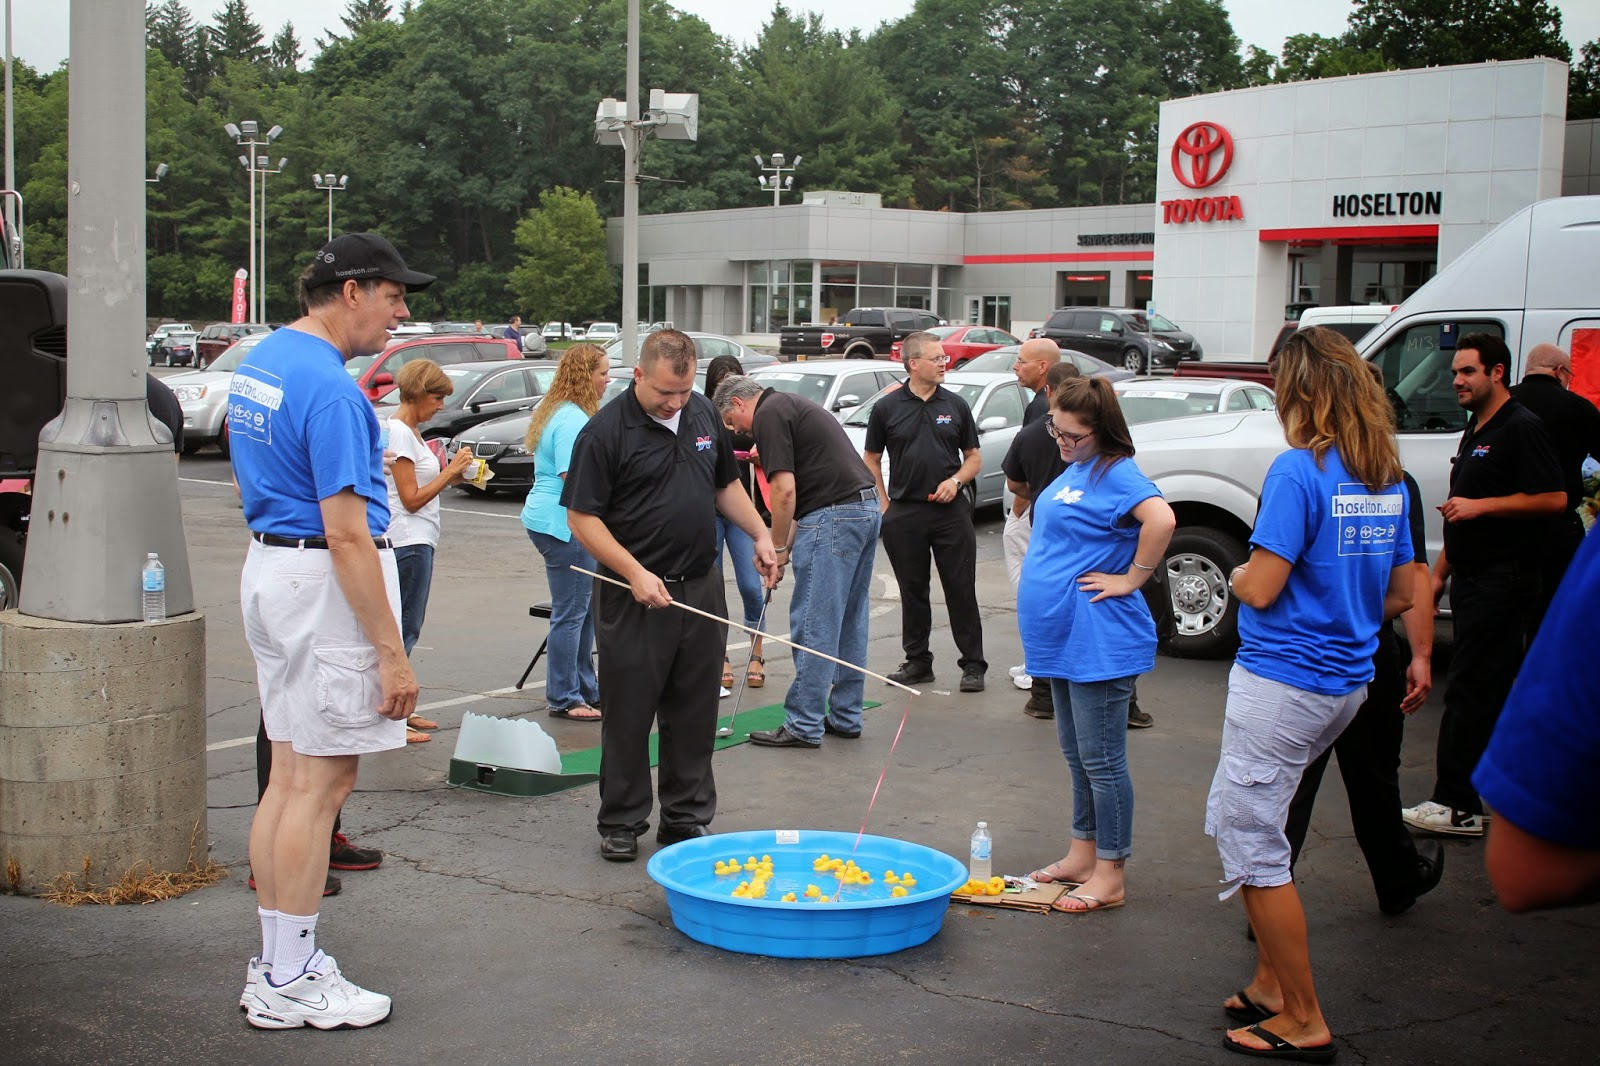 Games at Hoselton Auto Mall's Annual Sundae Fun Day Employee Picnic!